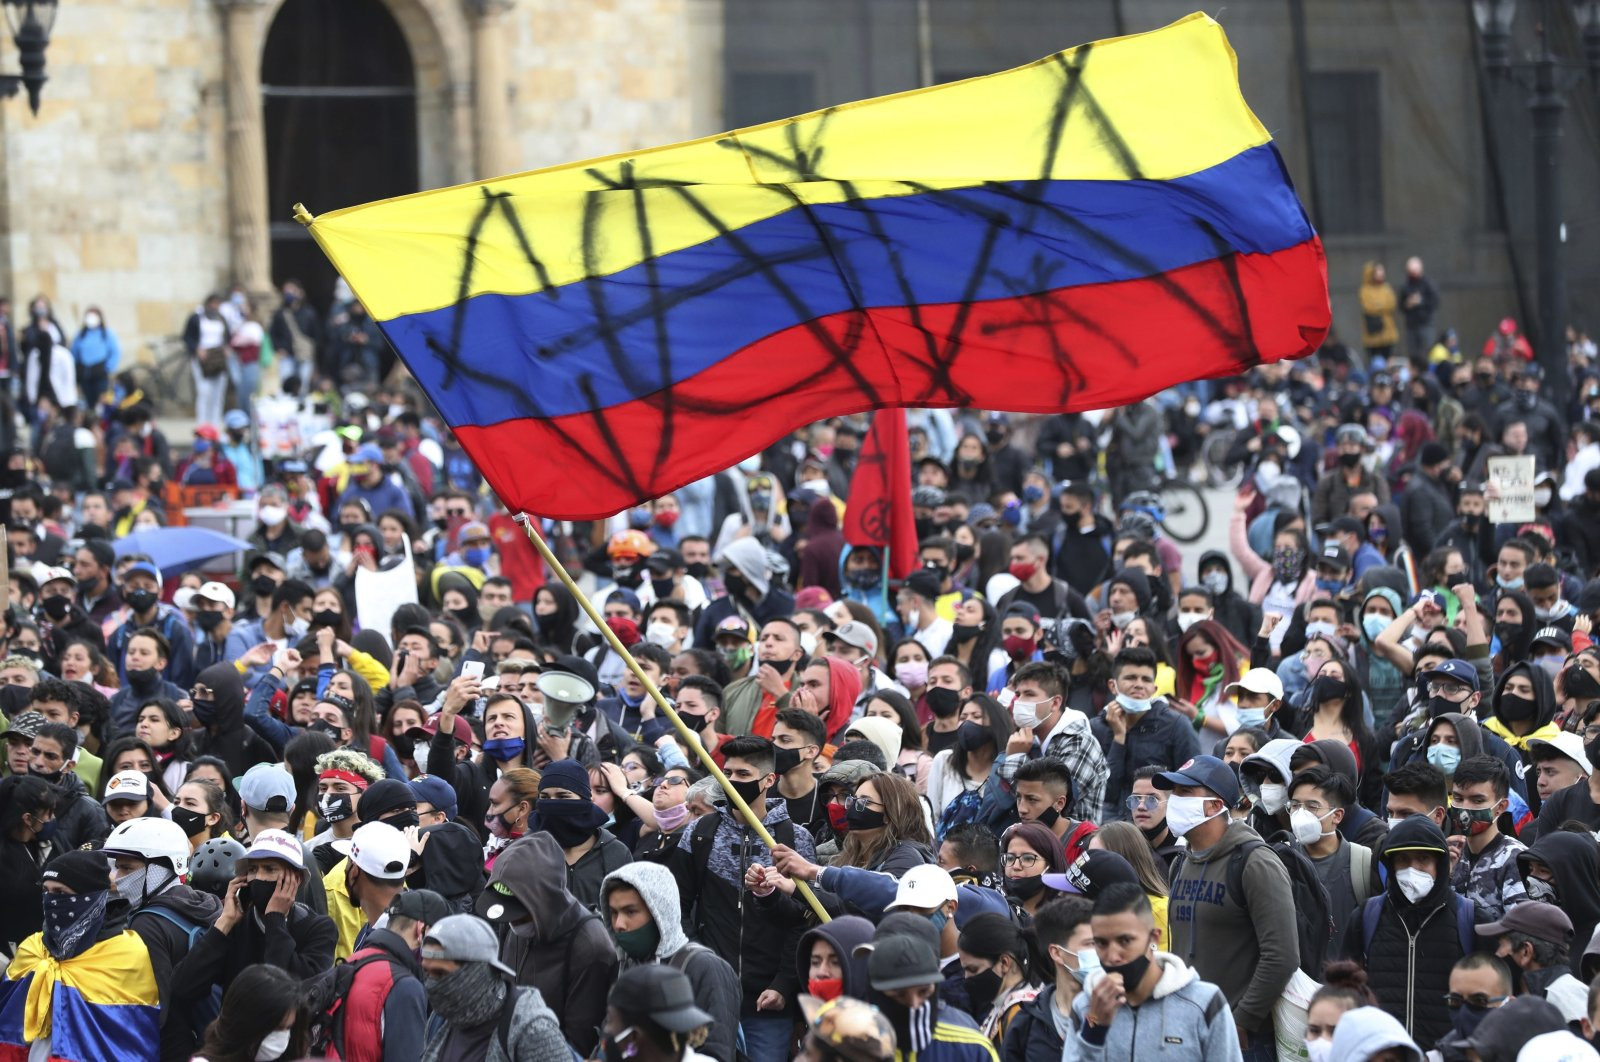 Protesters gather at Bolivar Square during a protest against the government in Bogota, Colombia, Sept. 21, 2020. (AP Photo)